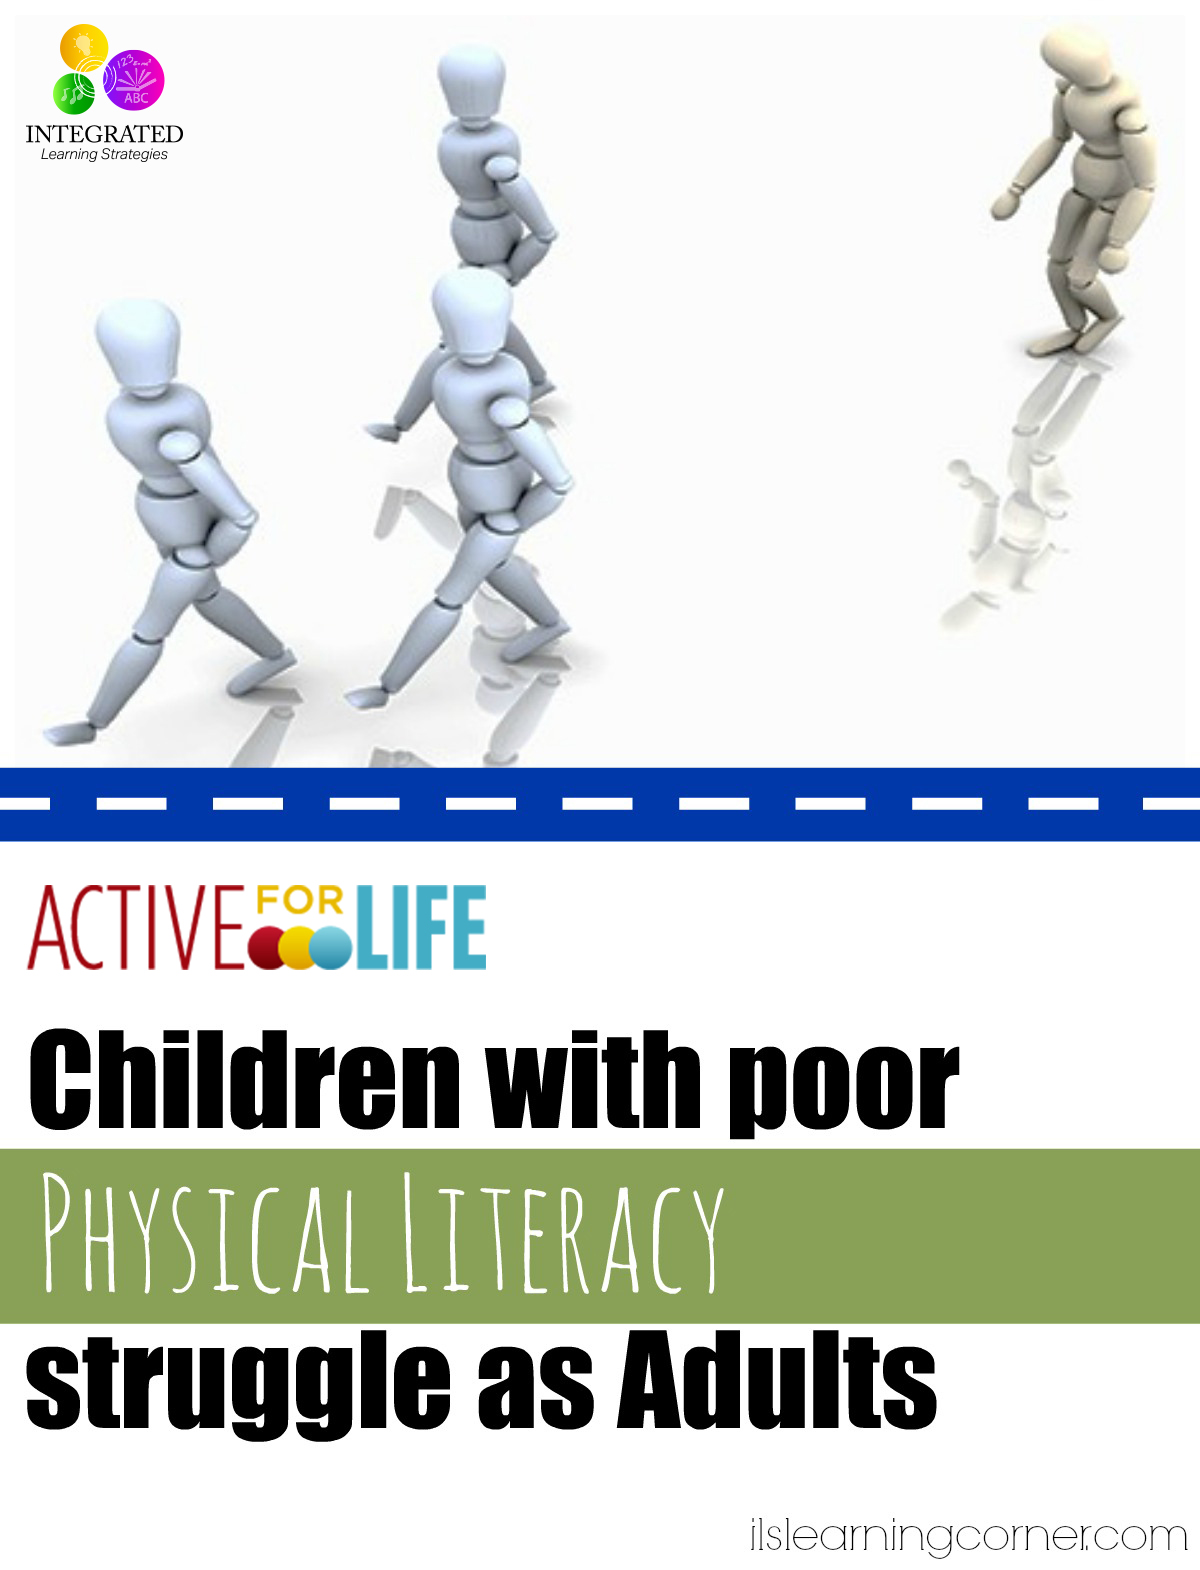 active adult definition